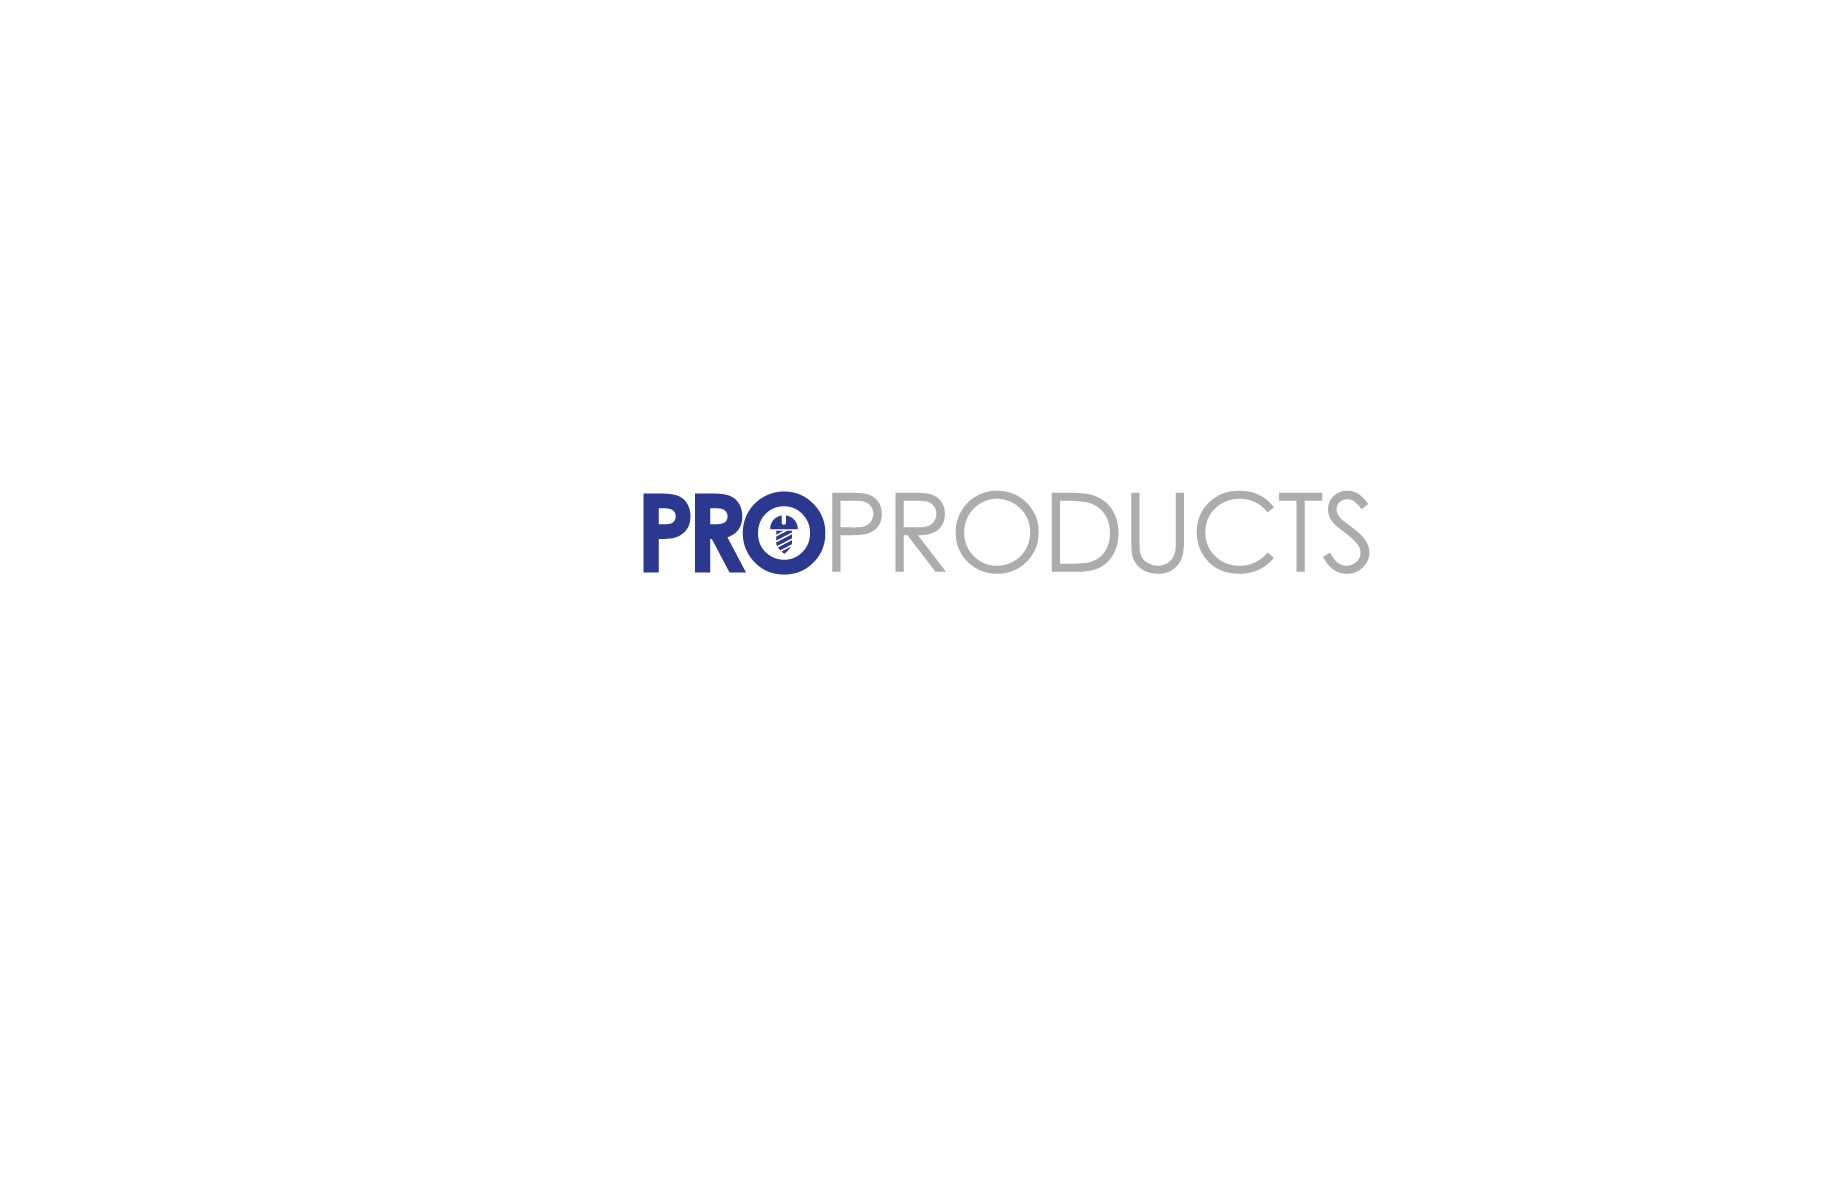 Logo Design by Jan Chua - Entry No. 7 in the Logo Design Contest Fun yet Professional Logo Design for ProProducts.